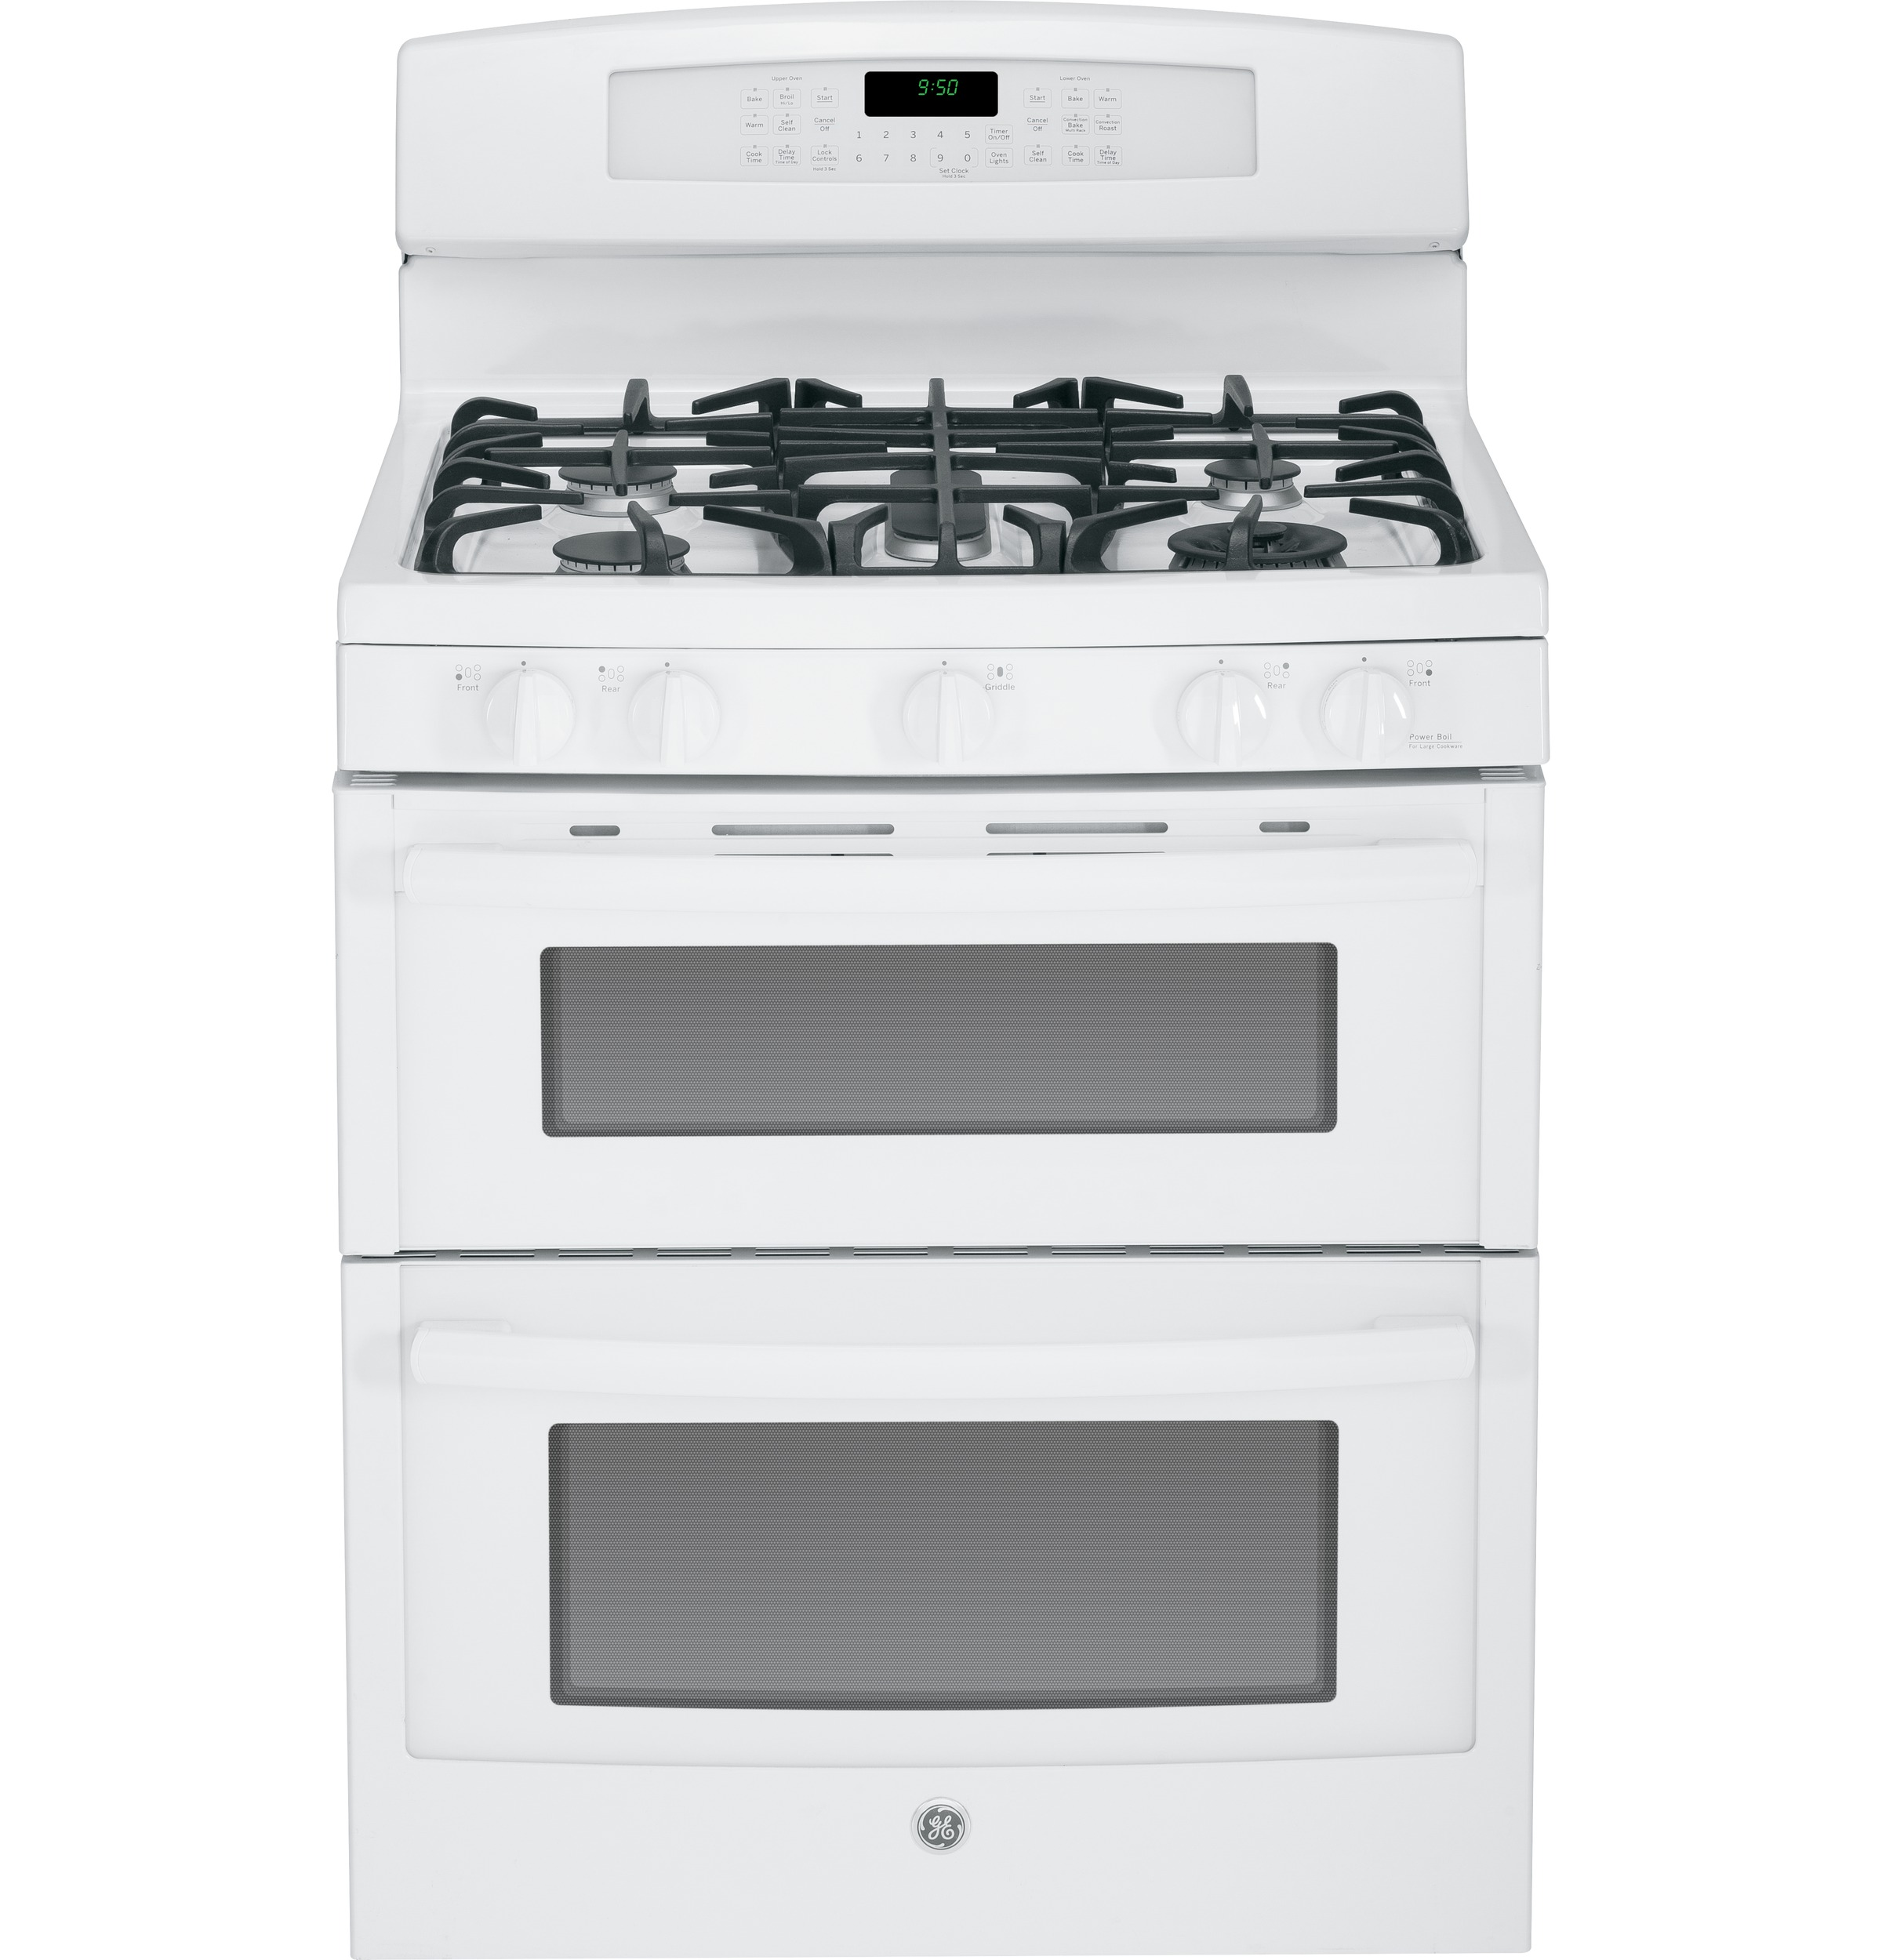 General Electric PGB950DEFWW 30 Inch Freestanding Gas